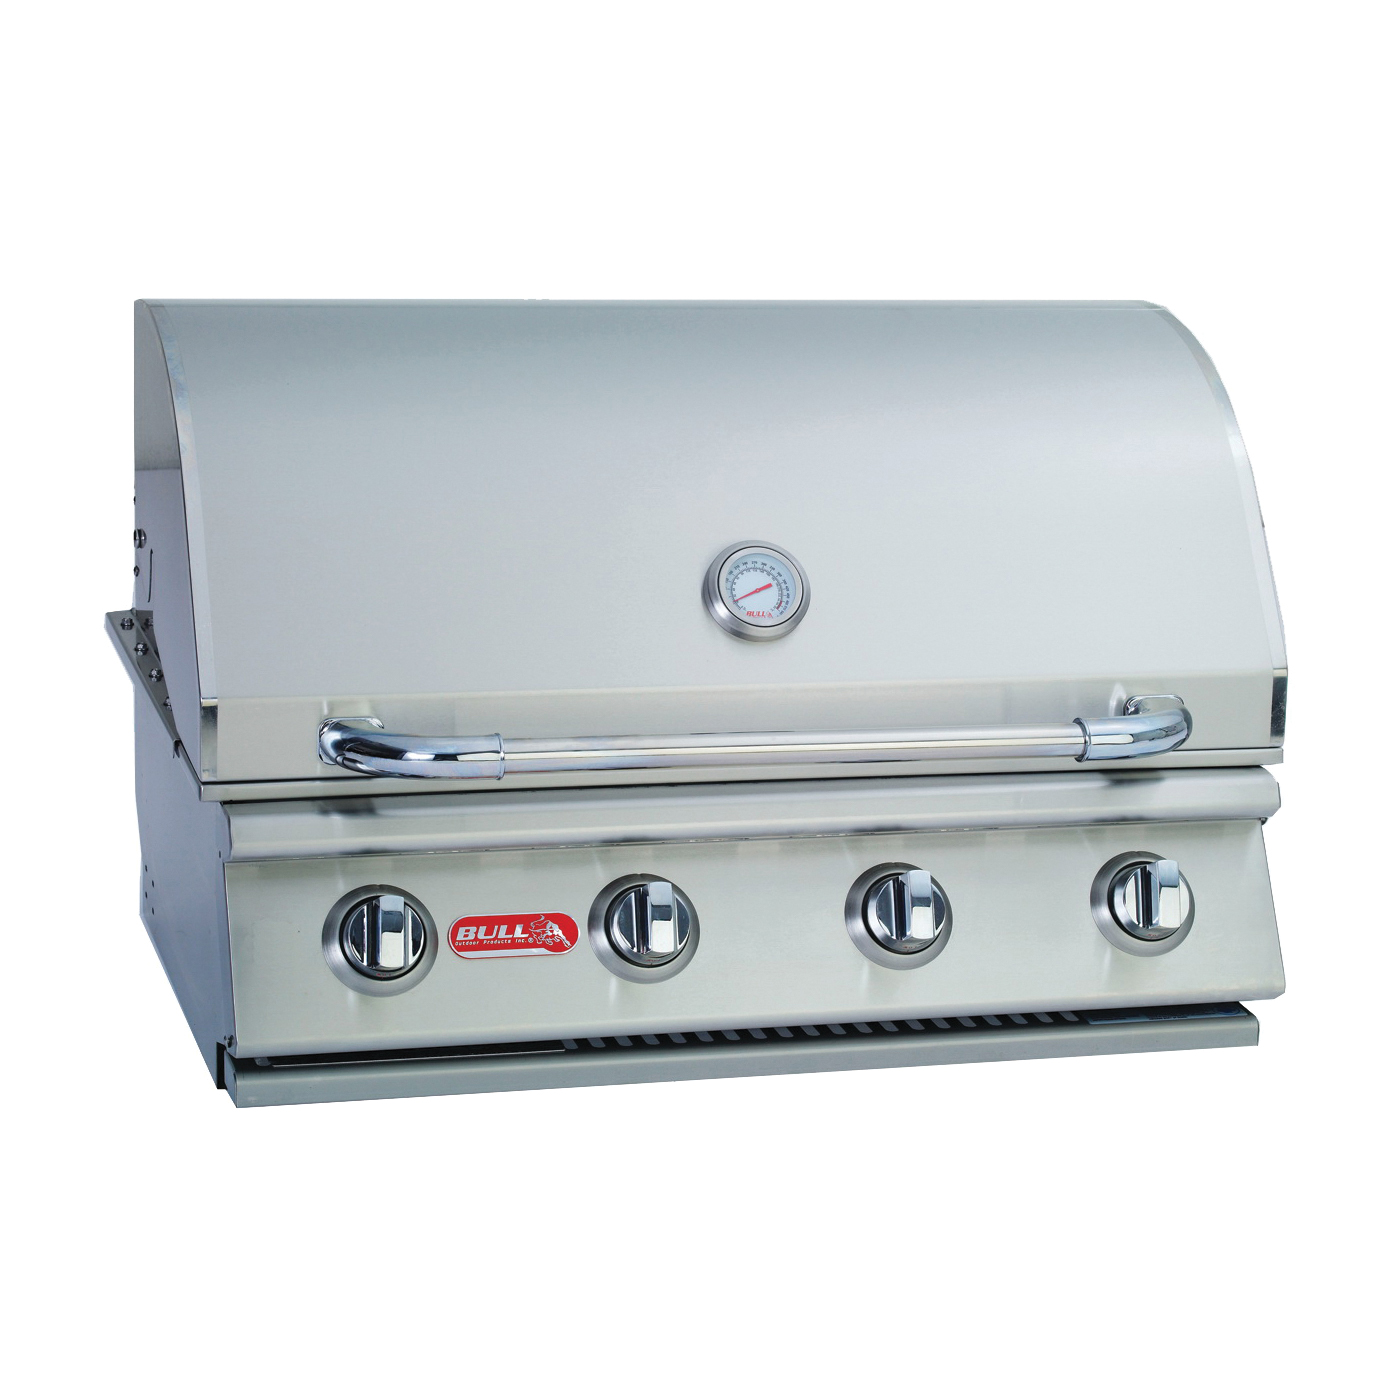 Picture of BULL OUTLAW 26038 Gas Grill Head, 60000 Btu BTU, LP, 4 -Burner, 210 sq-in Secondary Cooking Surface